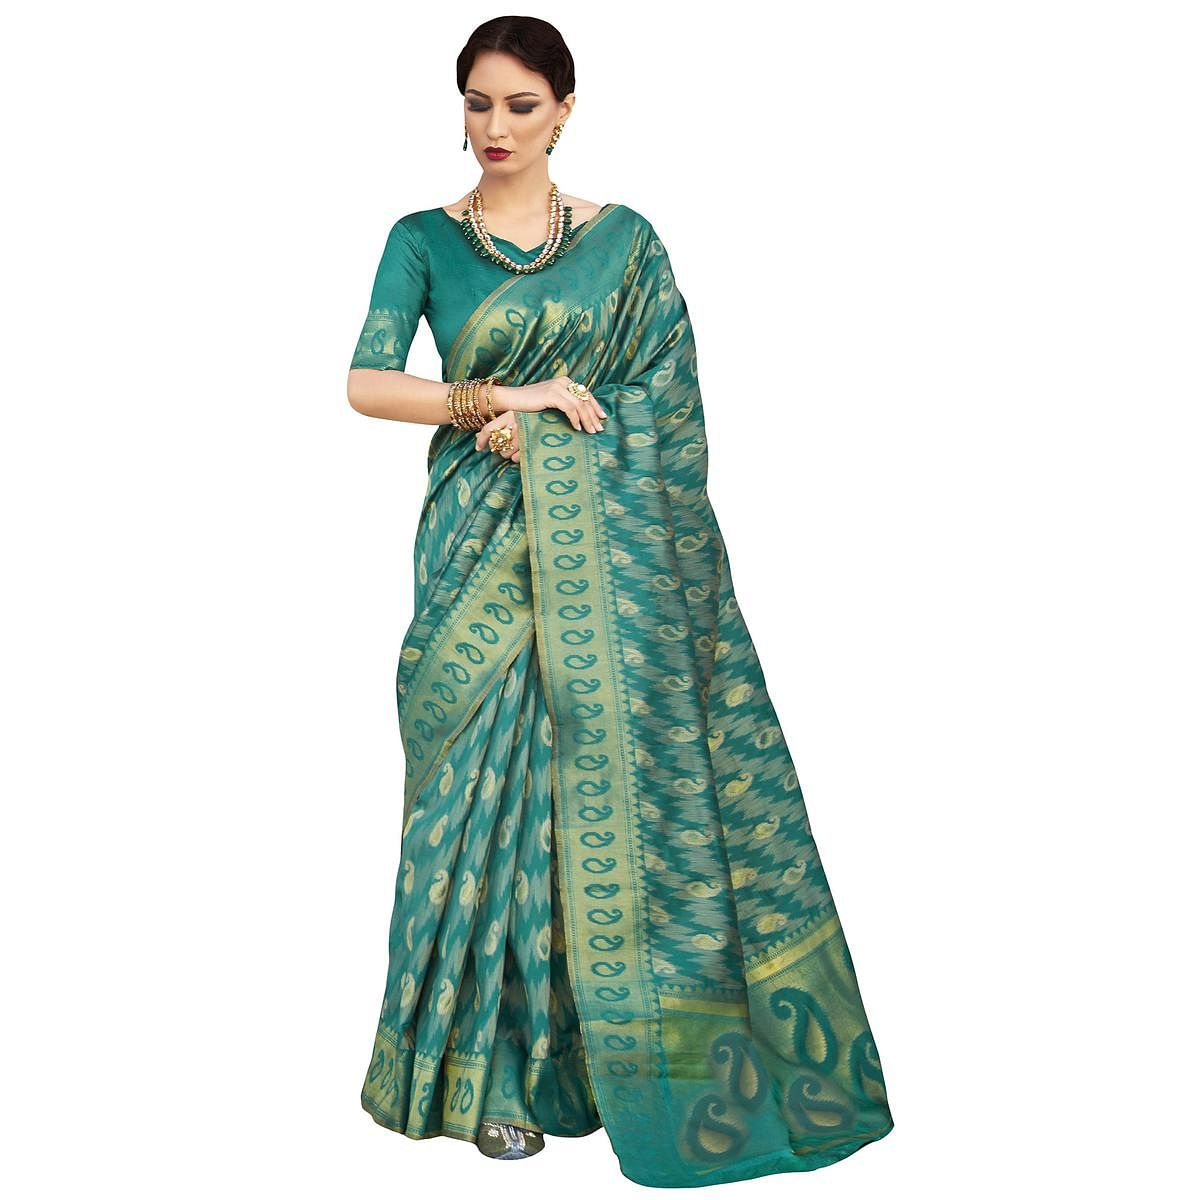 Exceptional Teal Green Colored Festive Wear Woven Ikkat Silk Saree